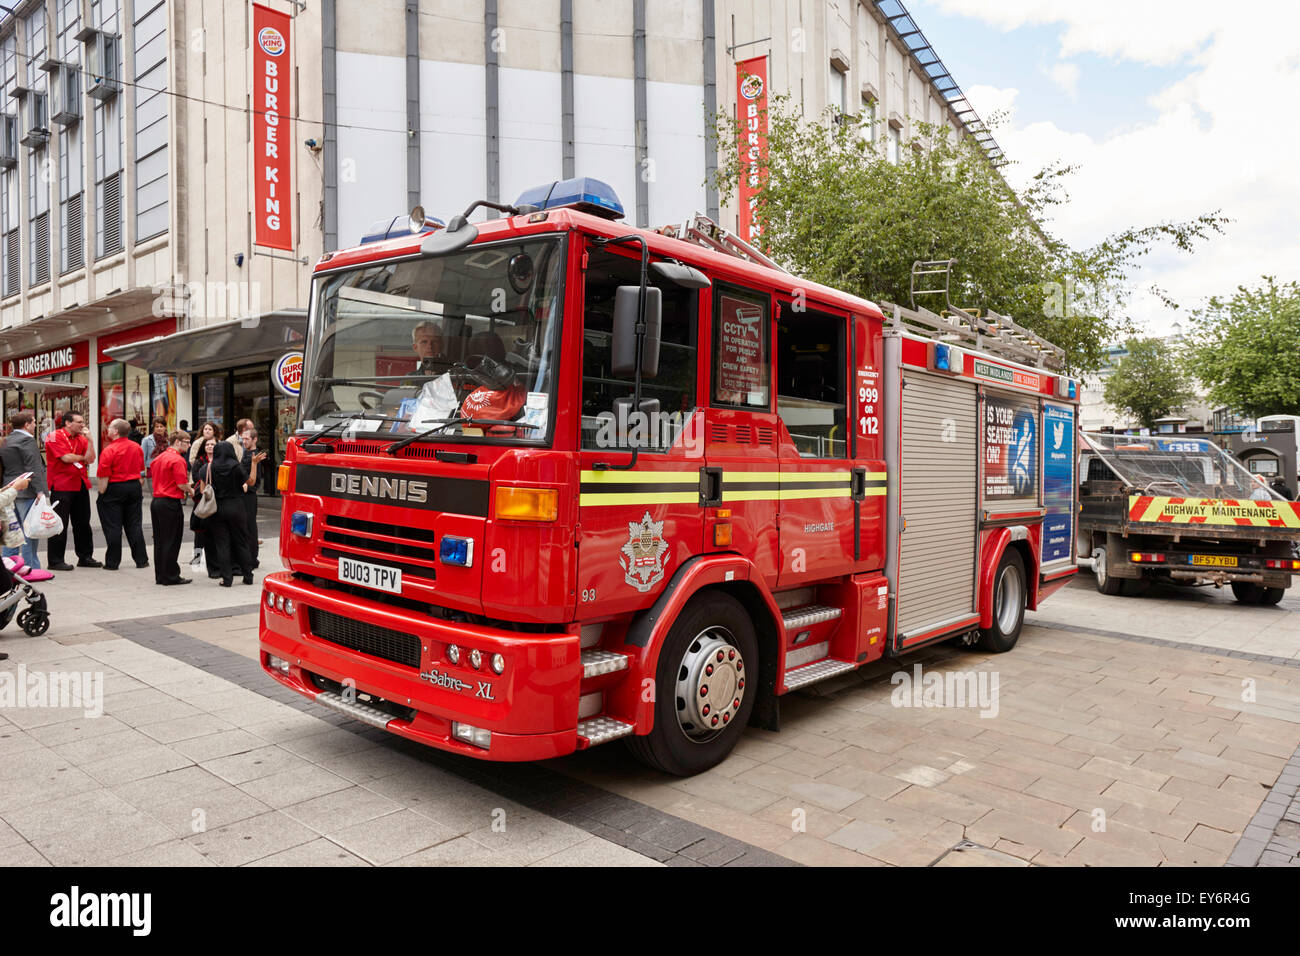 west midlands fire service engine on call in Birmingham city centre UK - Stock Image